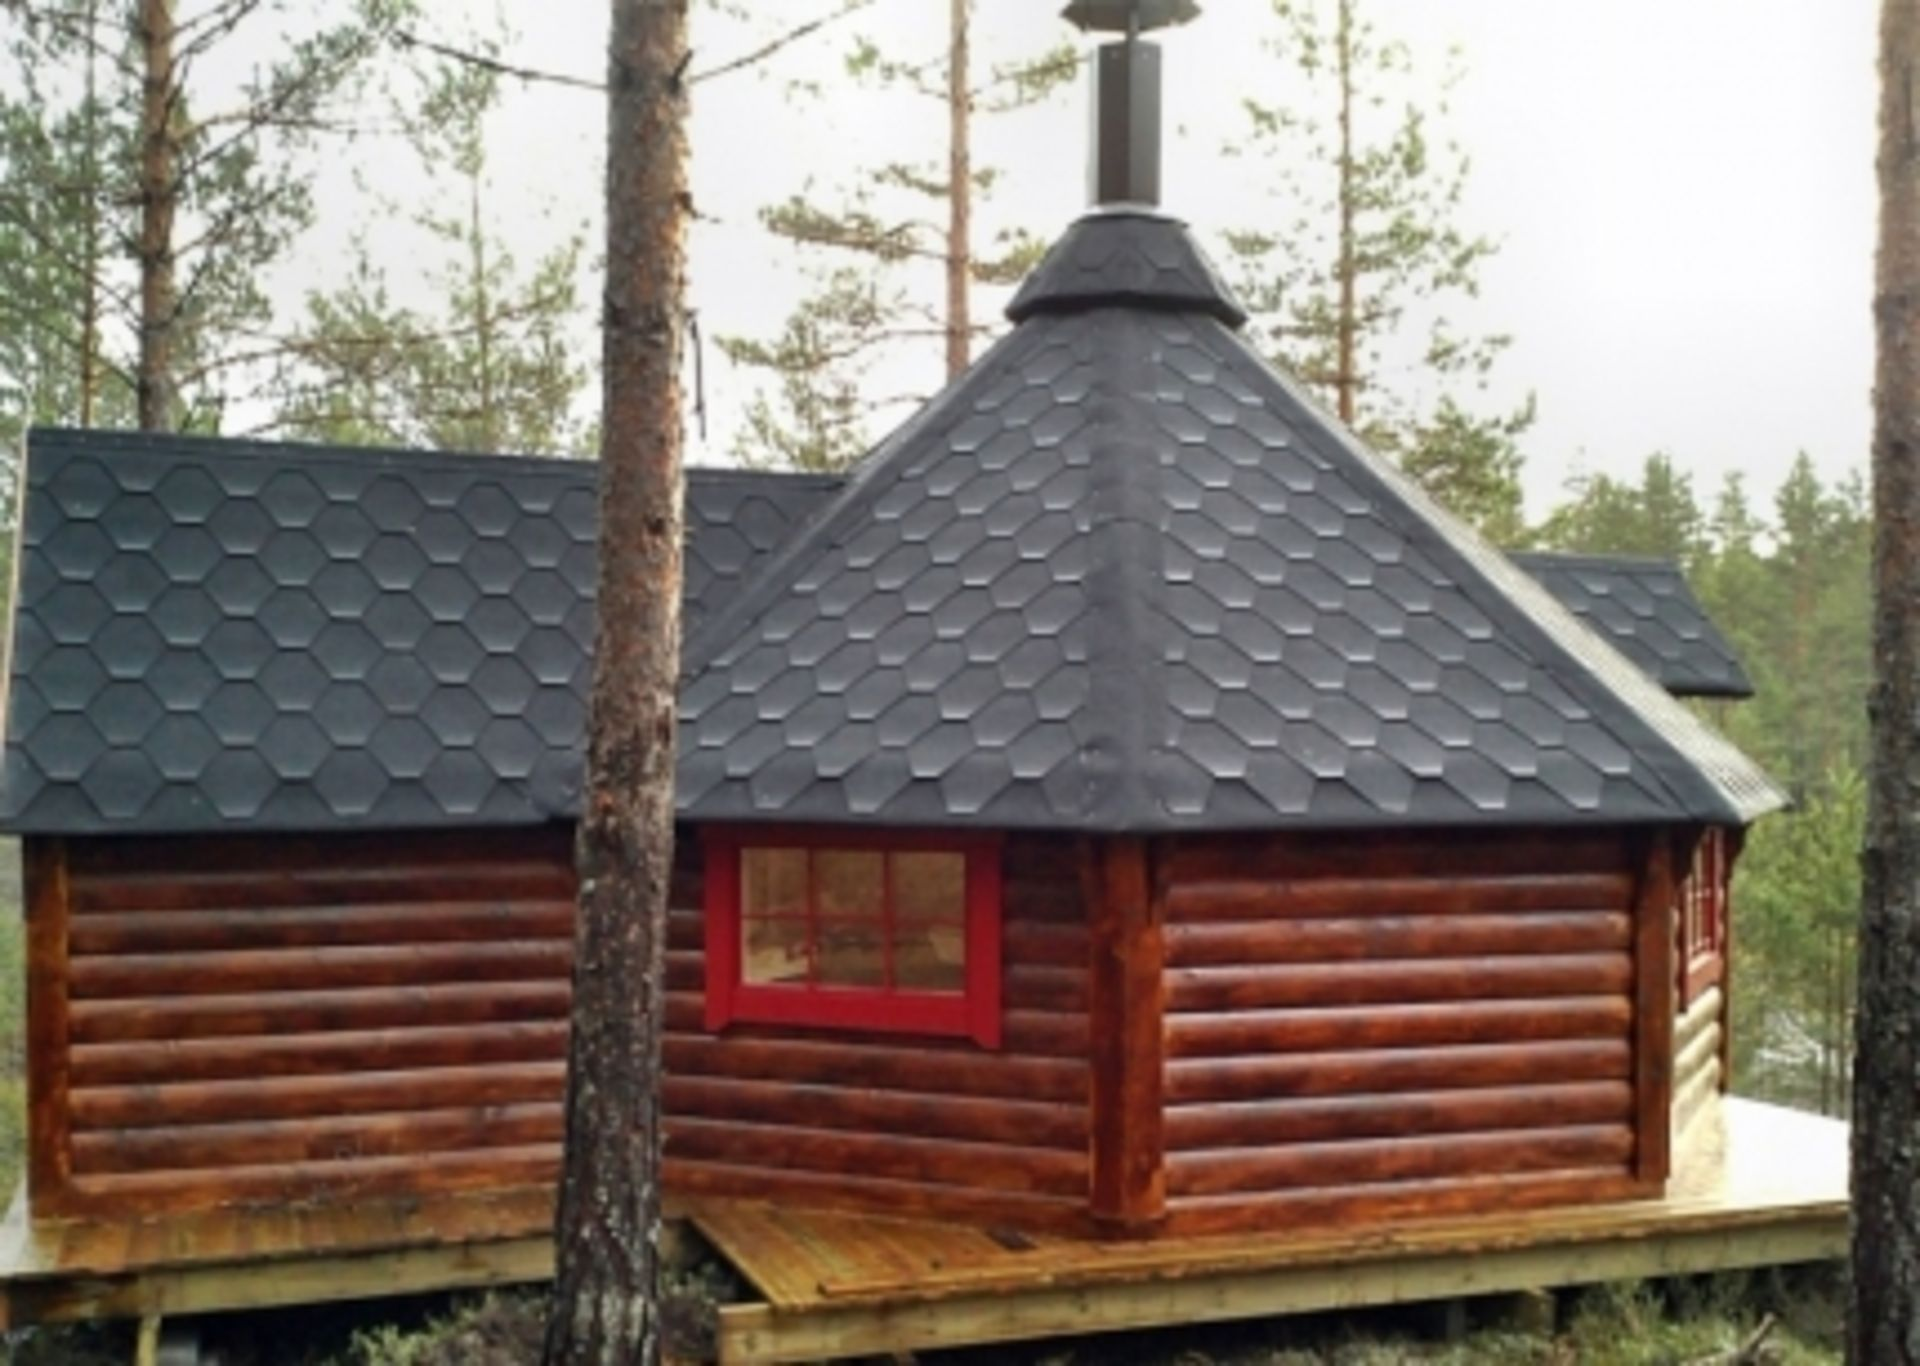 Lot 19024 - + VAT Brand New 16.5m sq Grill Cabin With Extension - Roof Covered With Bitumen Shingles -